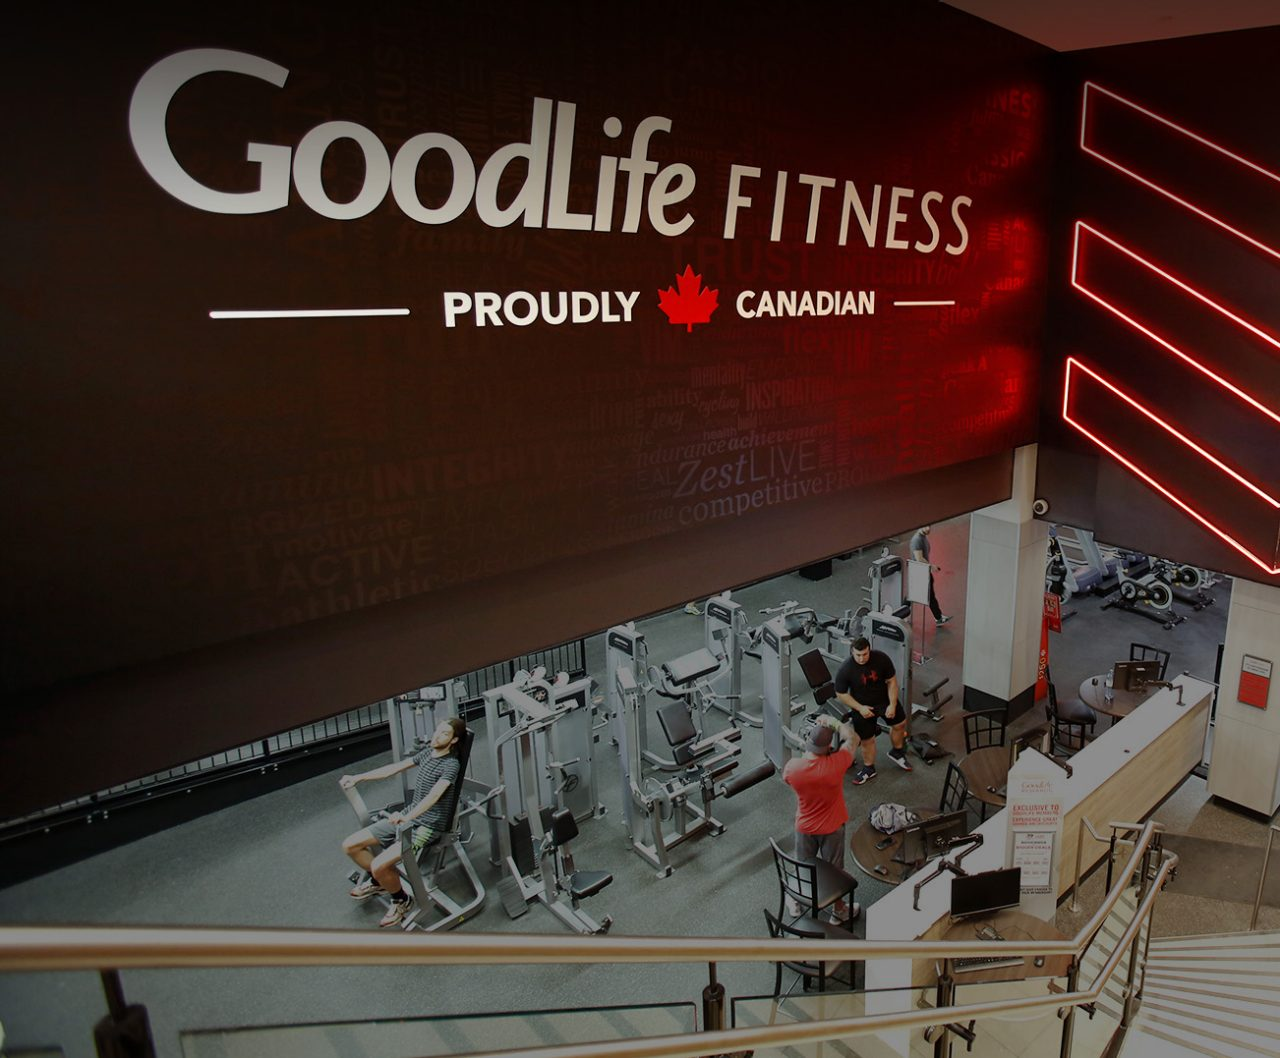 Aerial shot of a GoodLife club interior area with machine and three men working out